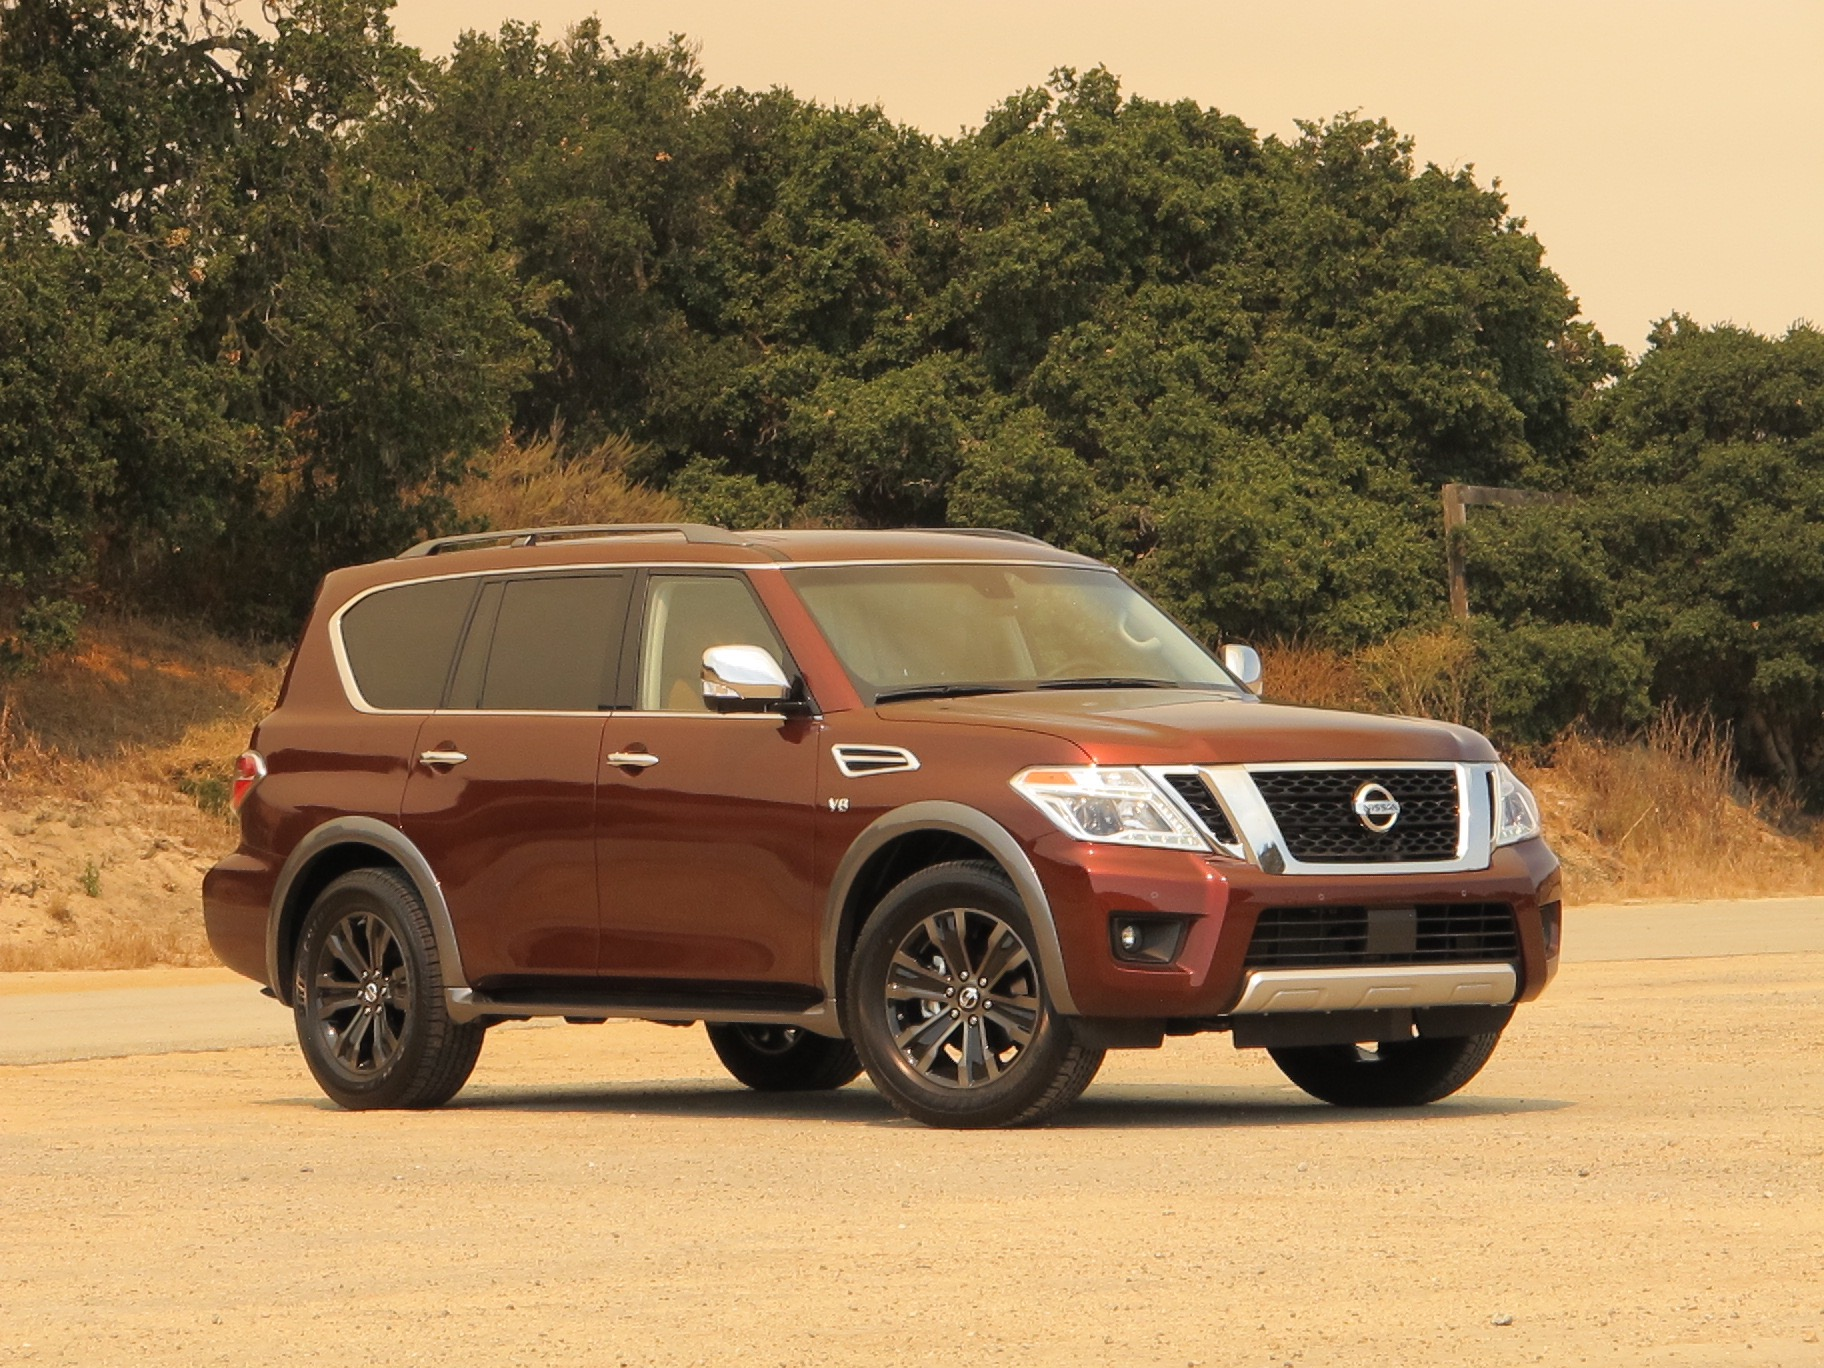 2017 Nissan Armada priced from $45,395